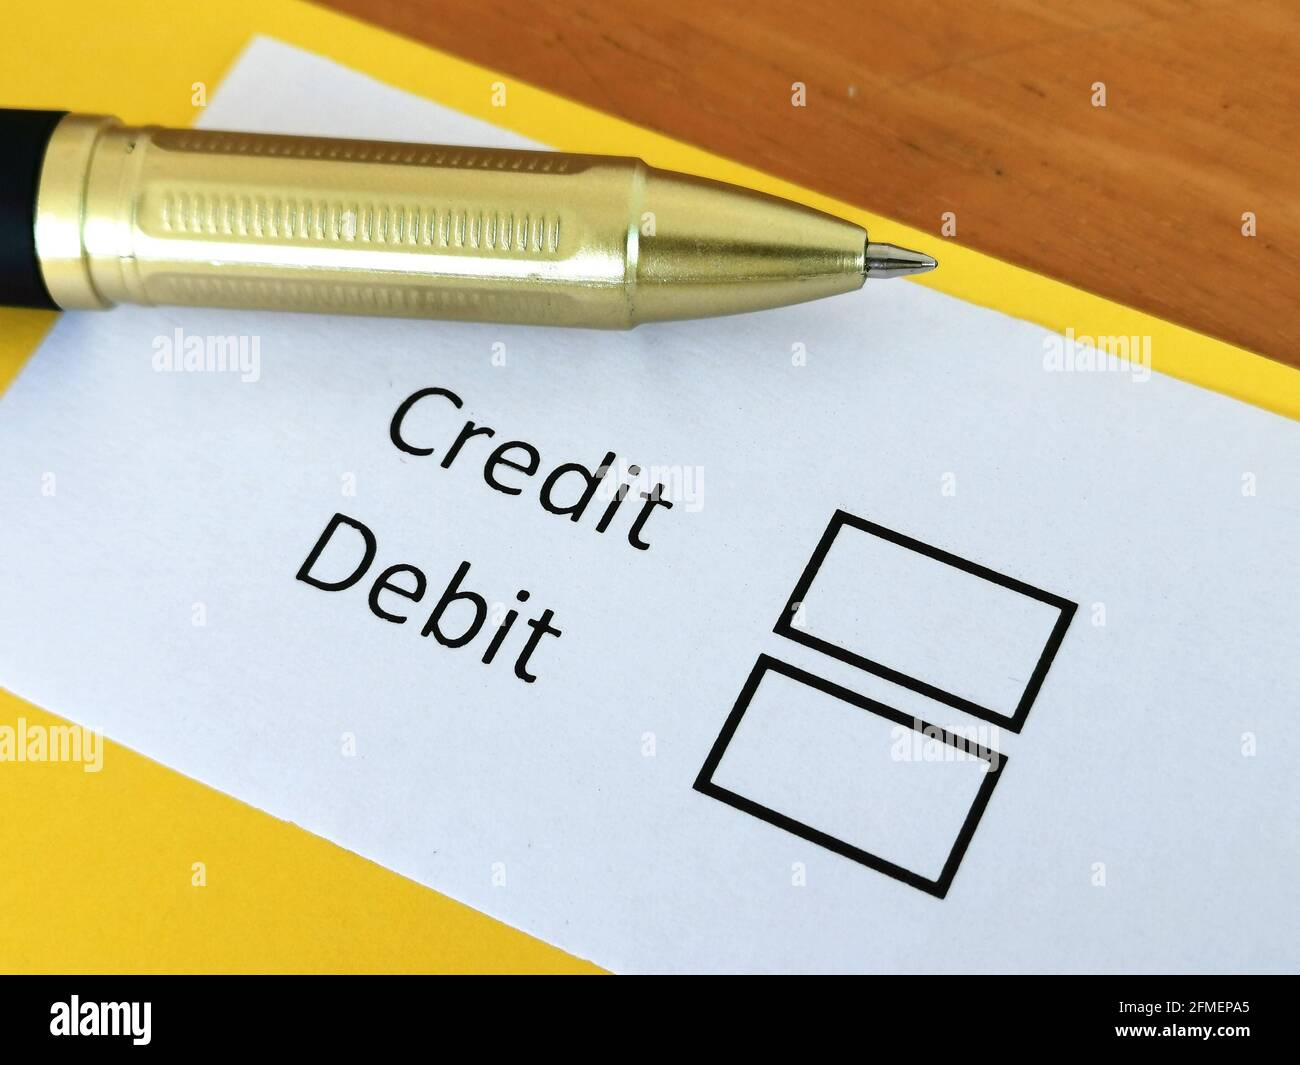 One person is answering question about credit and debit. Stock Photo